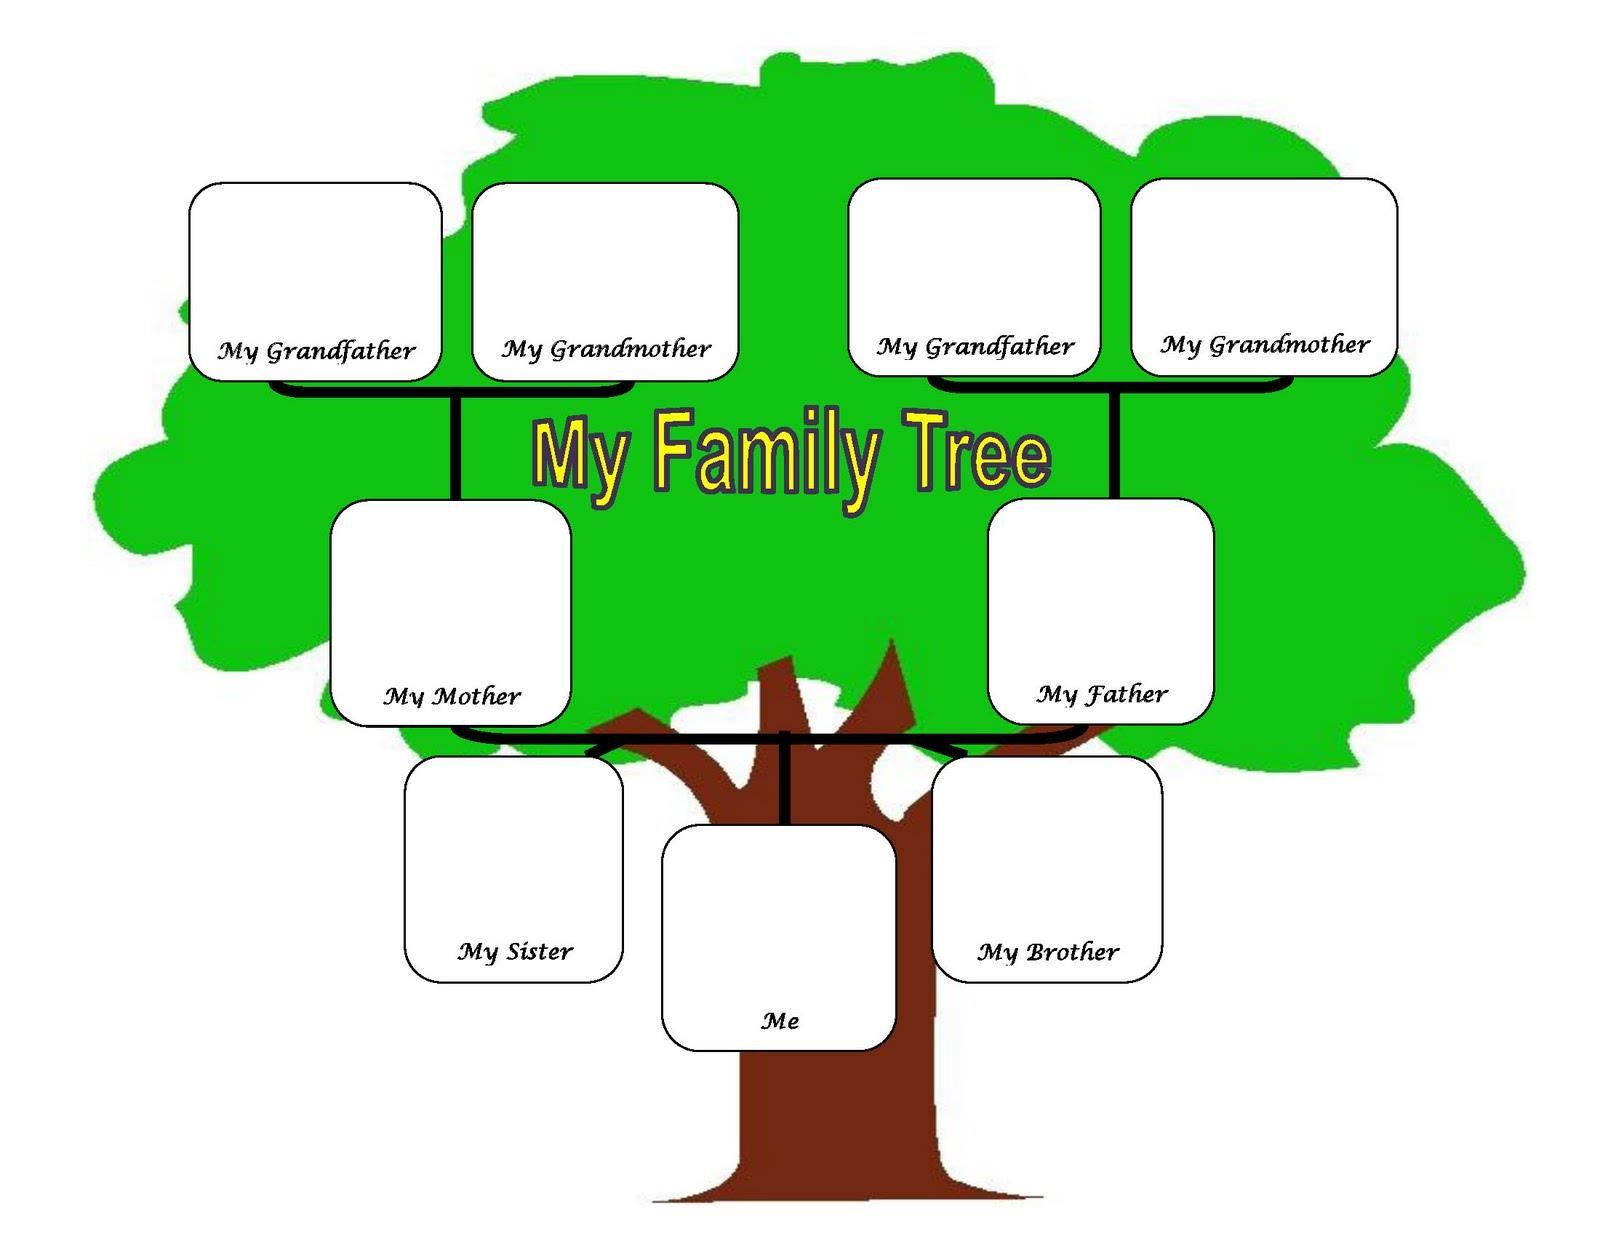 pictures of family trees free download best pictures of family trees on clipartmag com animated clipart teamwork animated clipart free